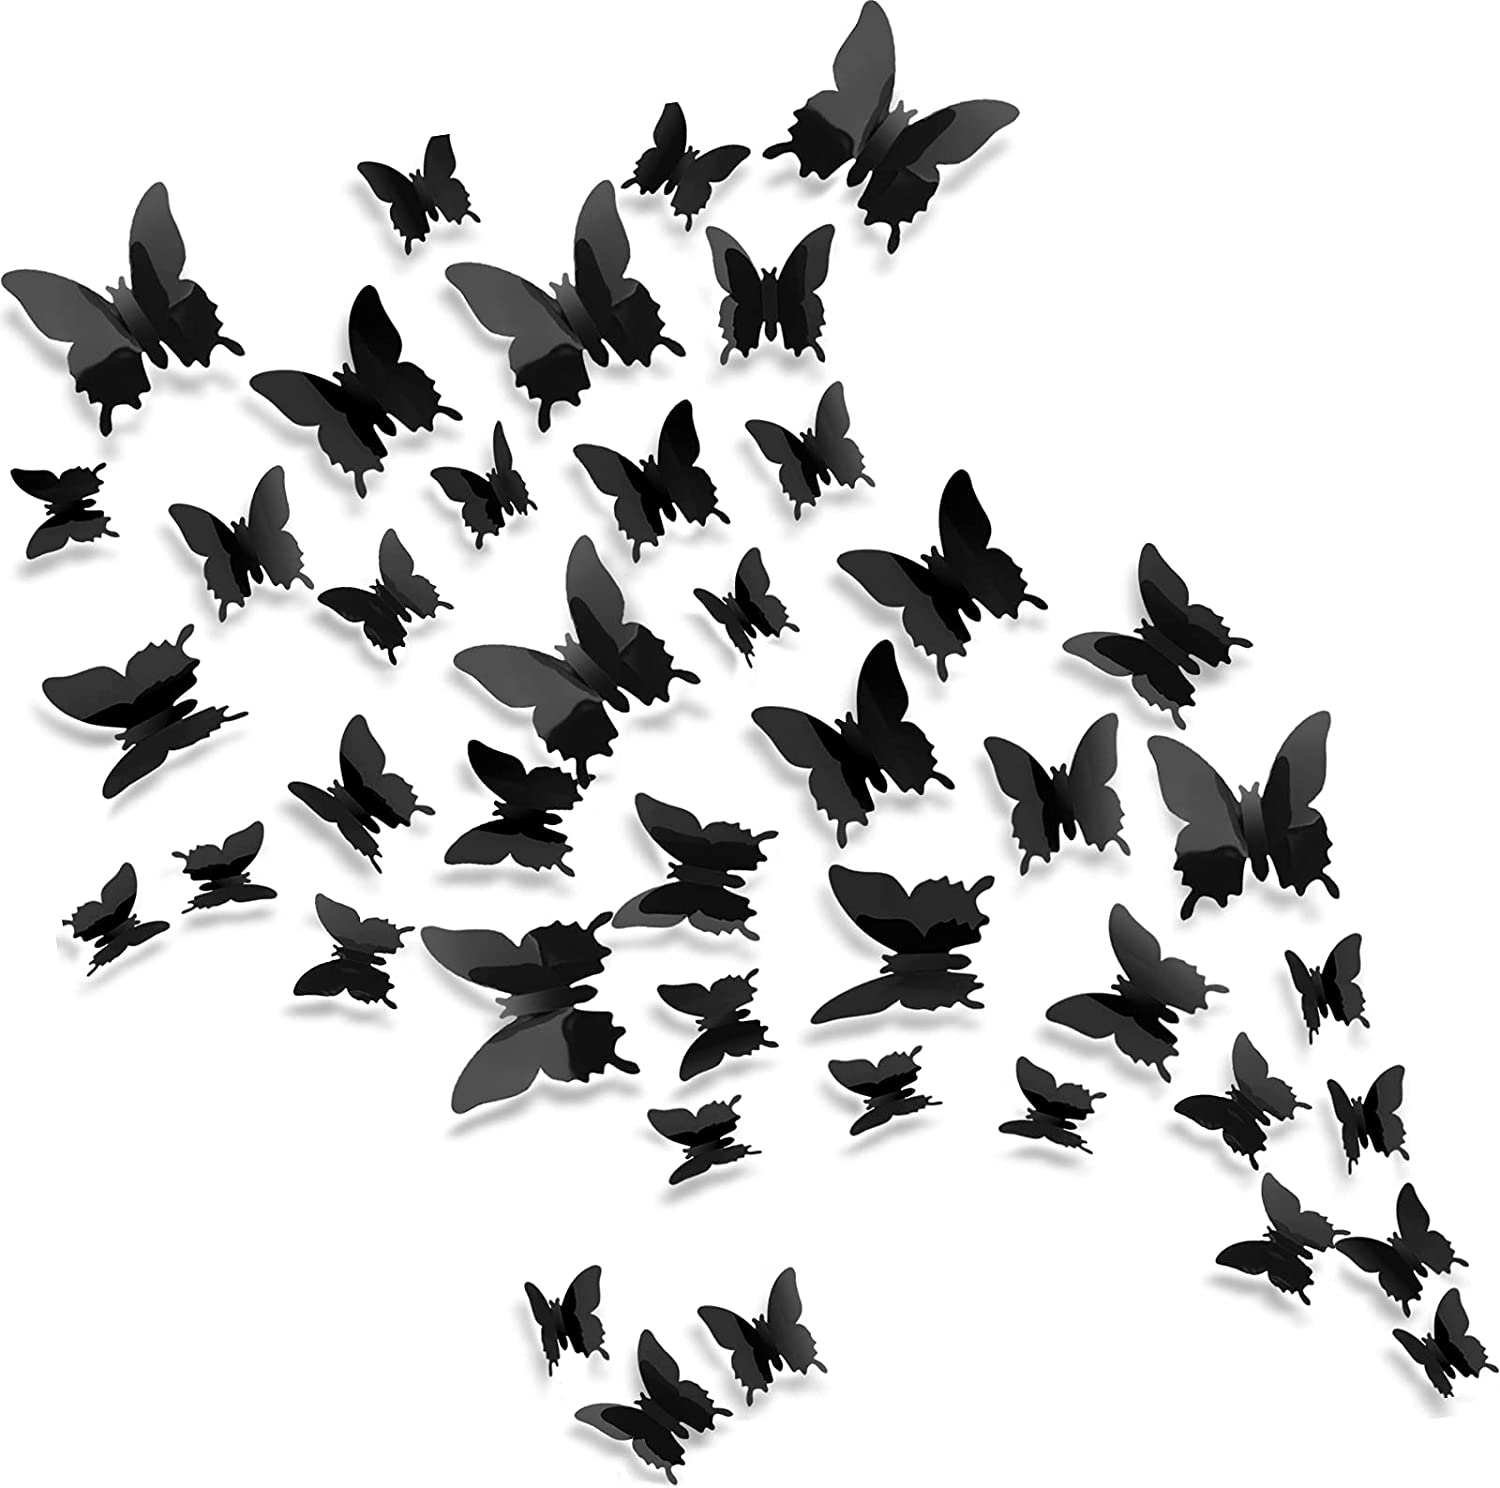 Crosize 72Pcs 3D Butterfly Wall Decor Black, 3 Sizes Removable Girl Room Wall Decor for Nursery Baby Girls Bedroom Home Party Decor